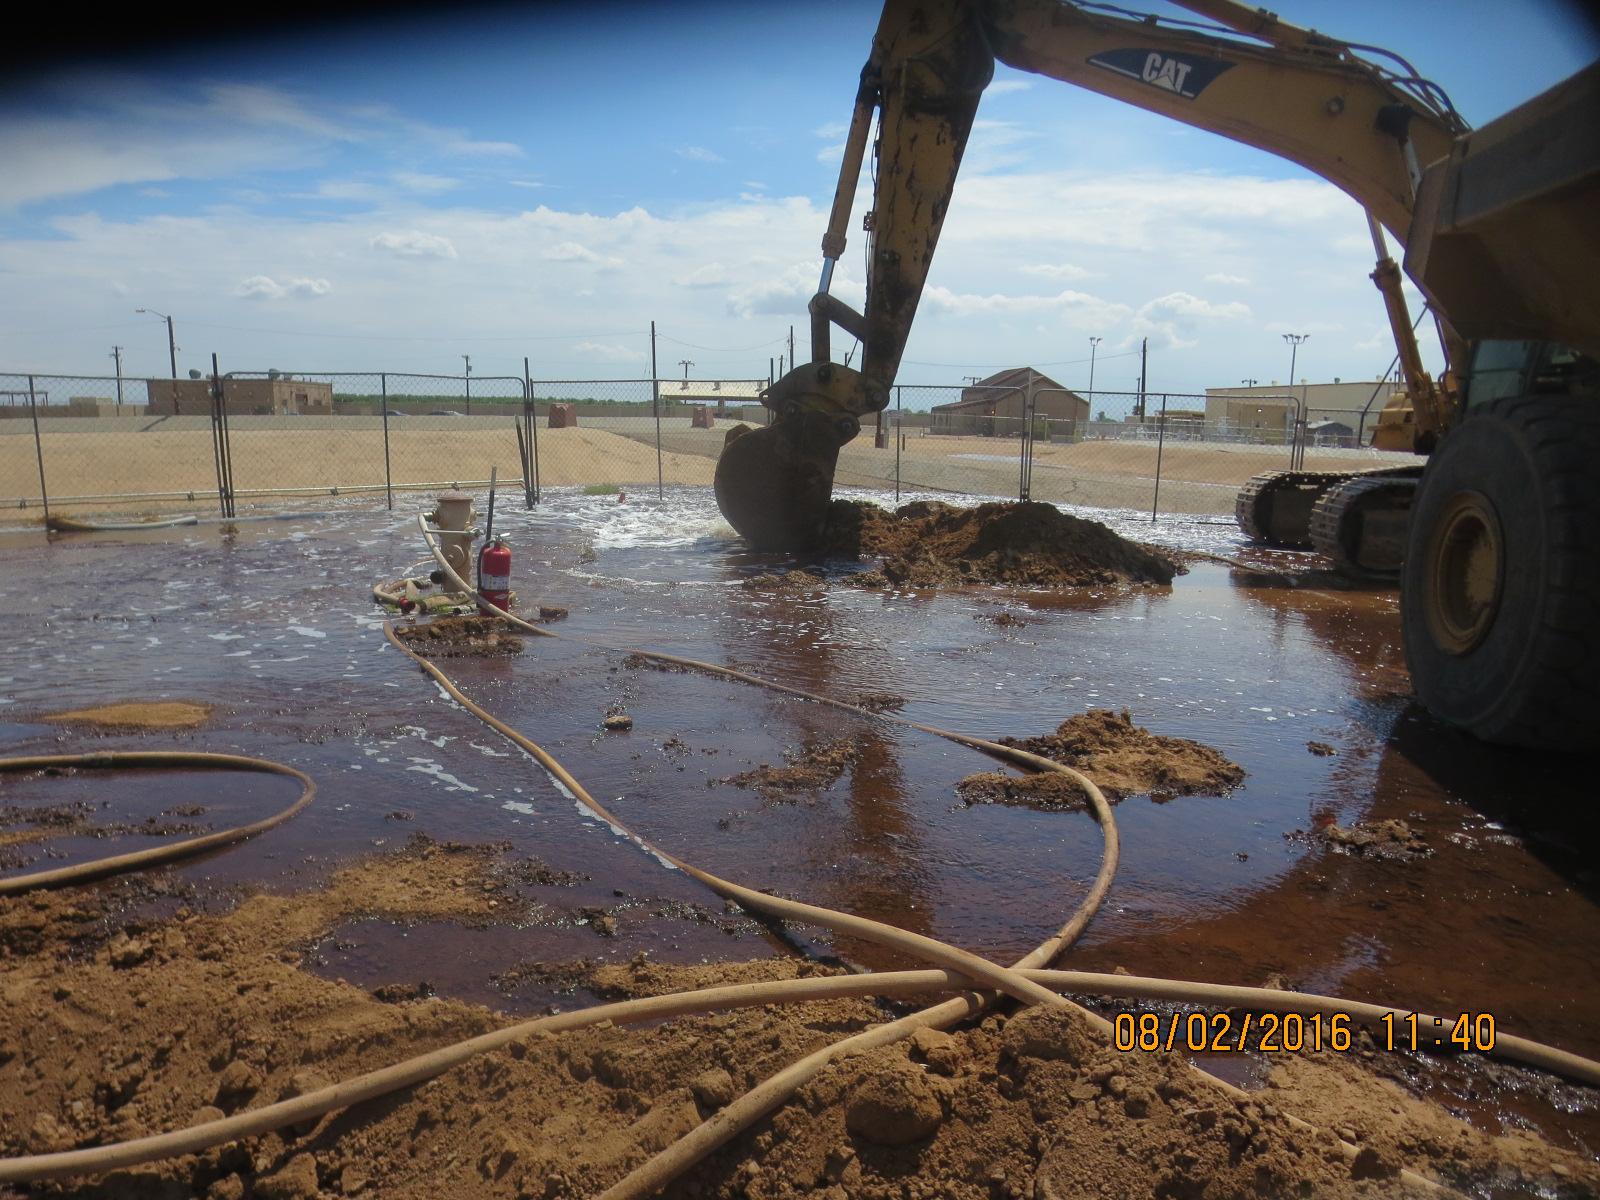 Air Force Base Jet Fuel Pipeline Spill